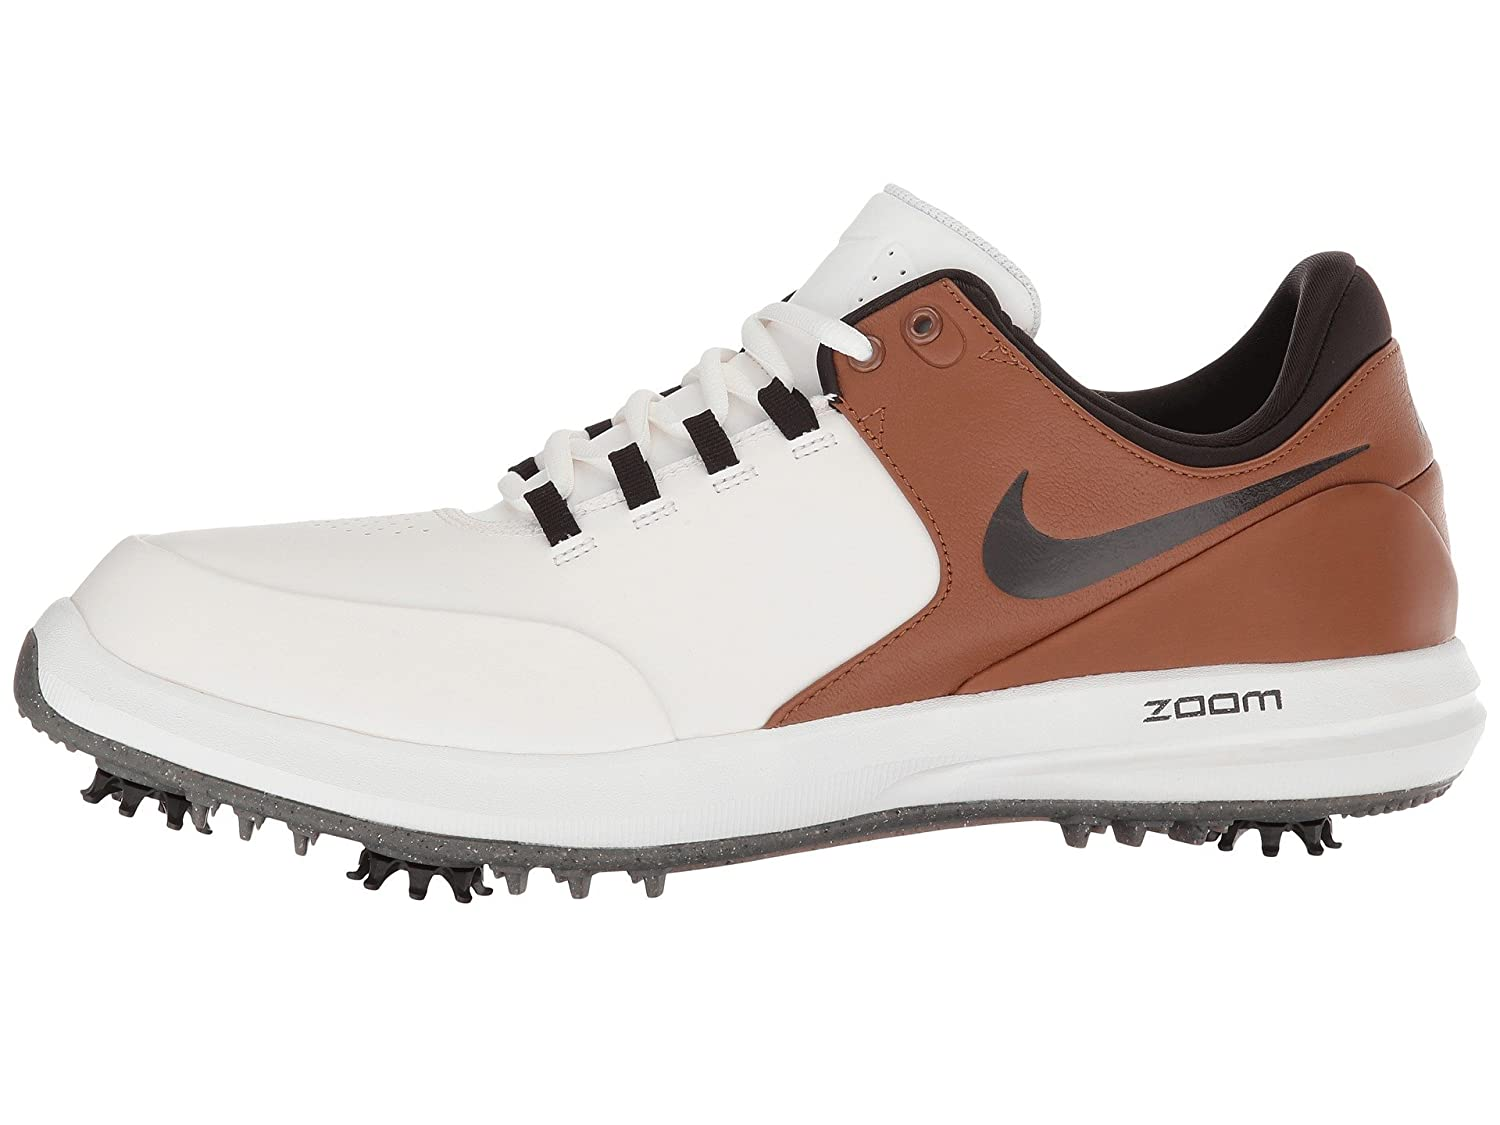 Nike Men s Golf Air Zoom Accurate Shoes 9 D US, Summit White Velvet Brown Light British Tan